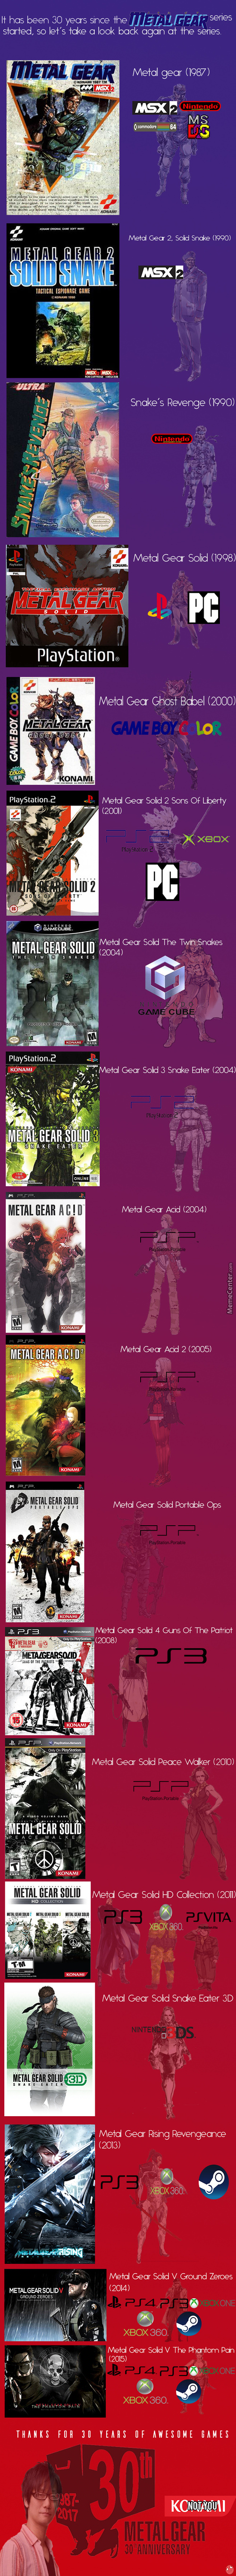 A 30Th Anniversary Post To Surpass Metal Gear